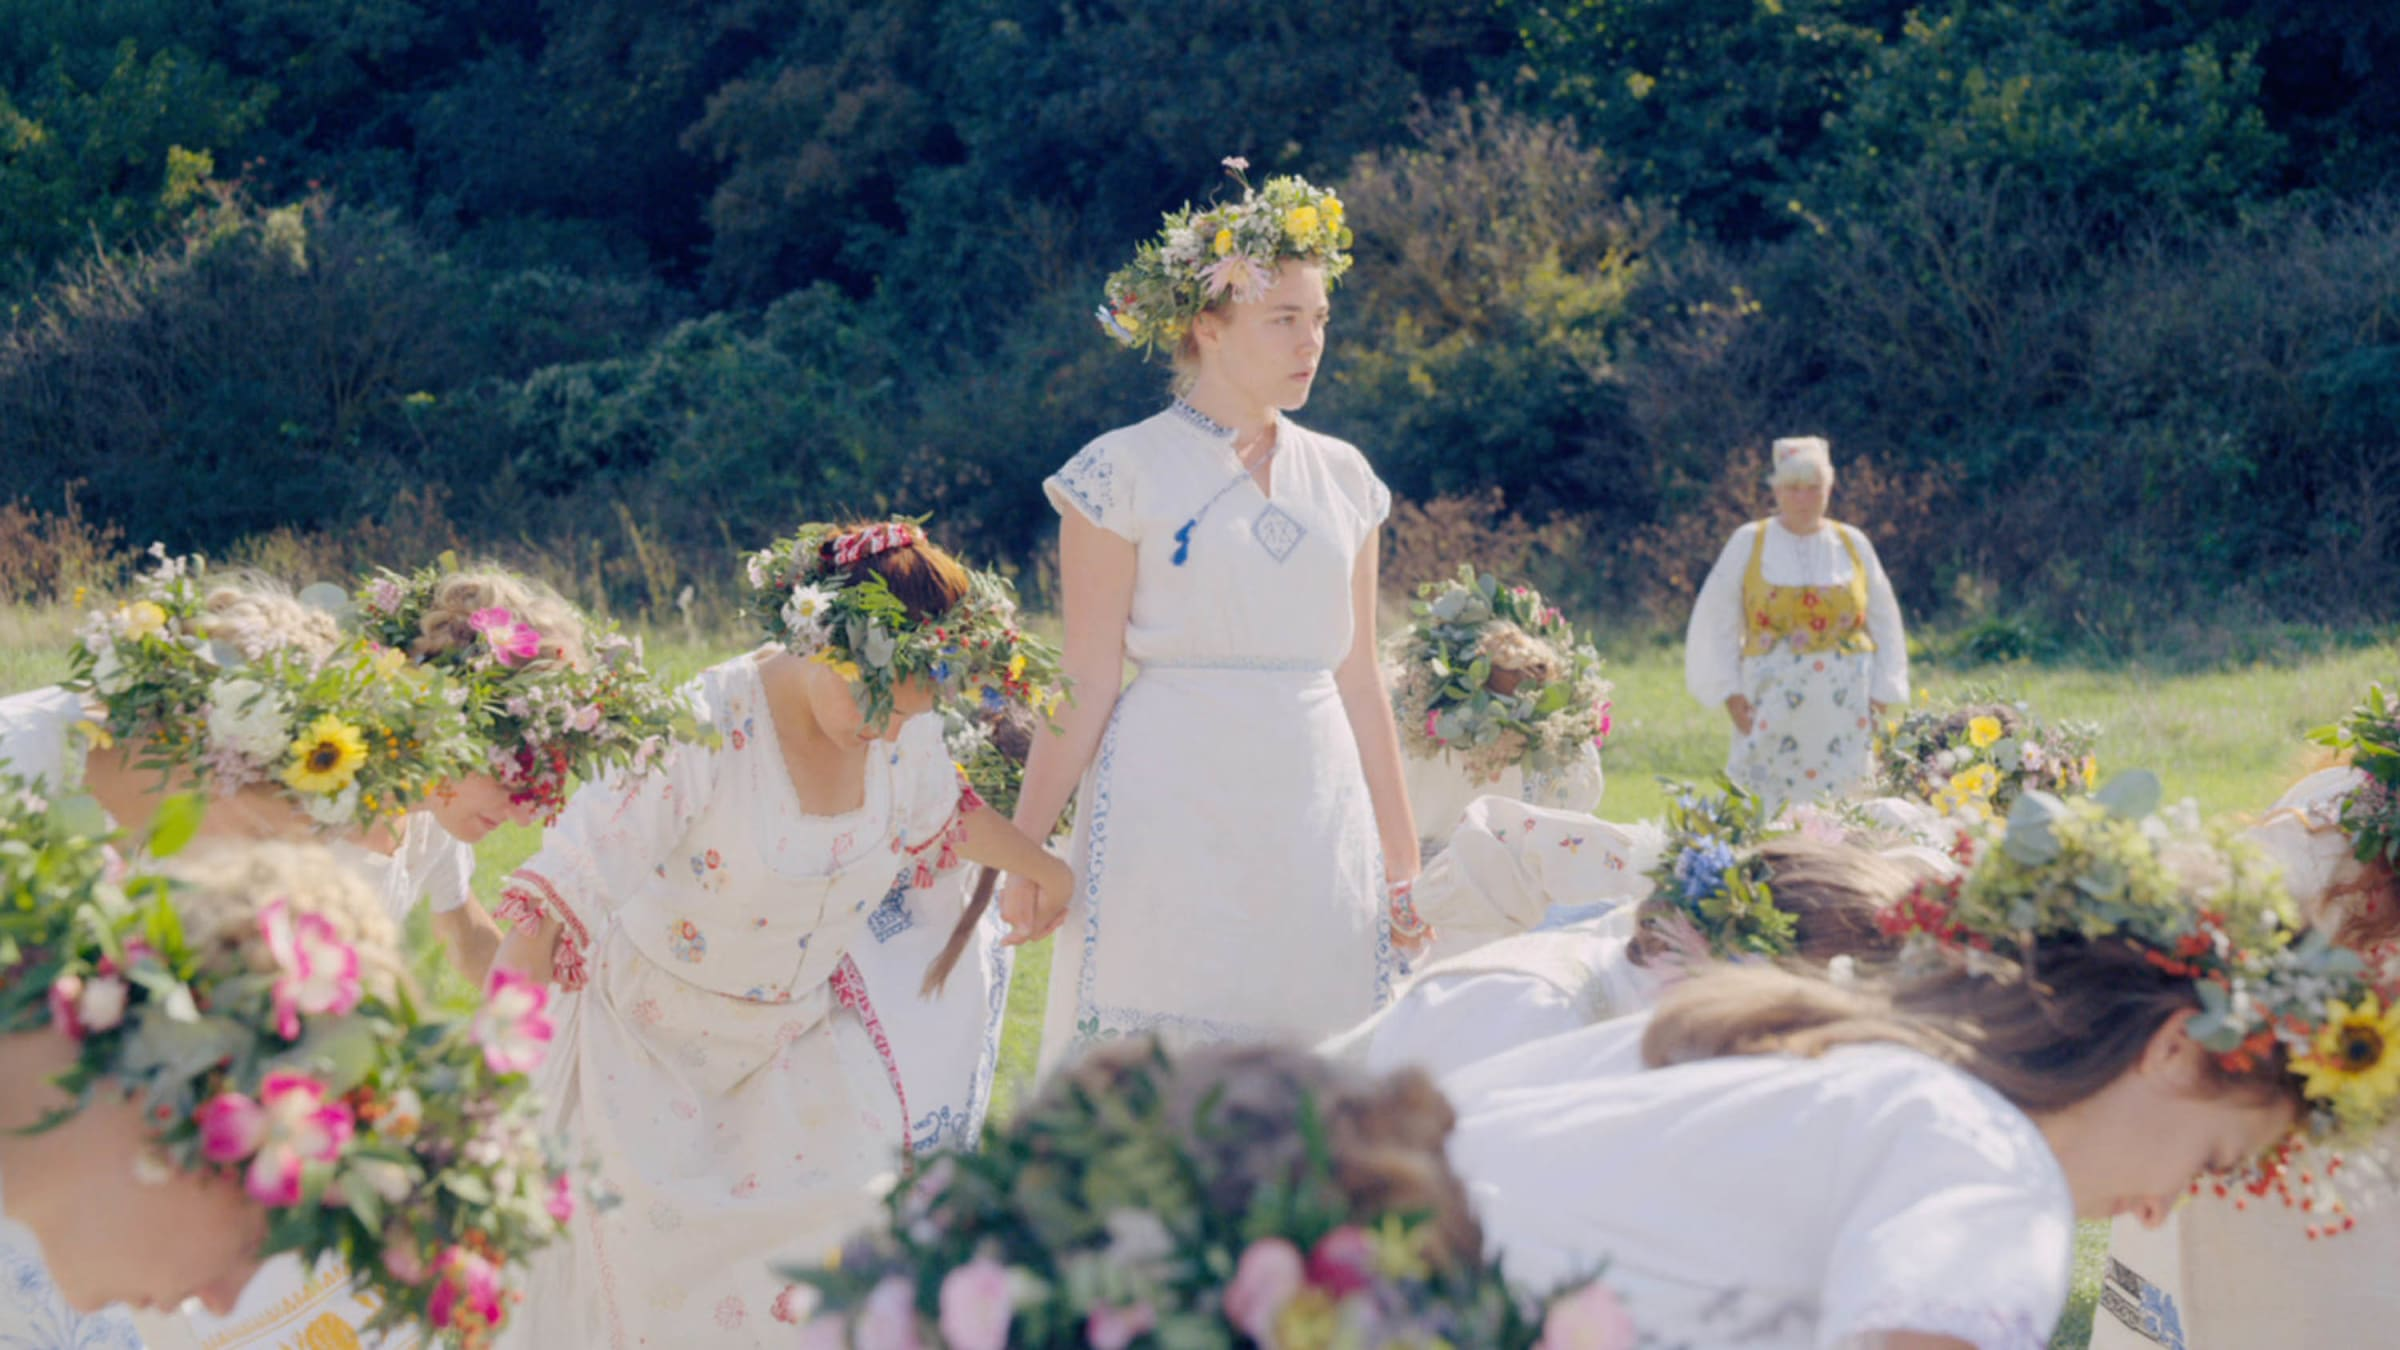 'Midsommar': Is This Killer-Sex-Cult Nightmare the Scariest Movie of the Year?